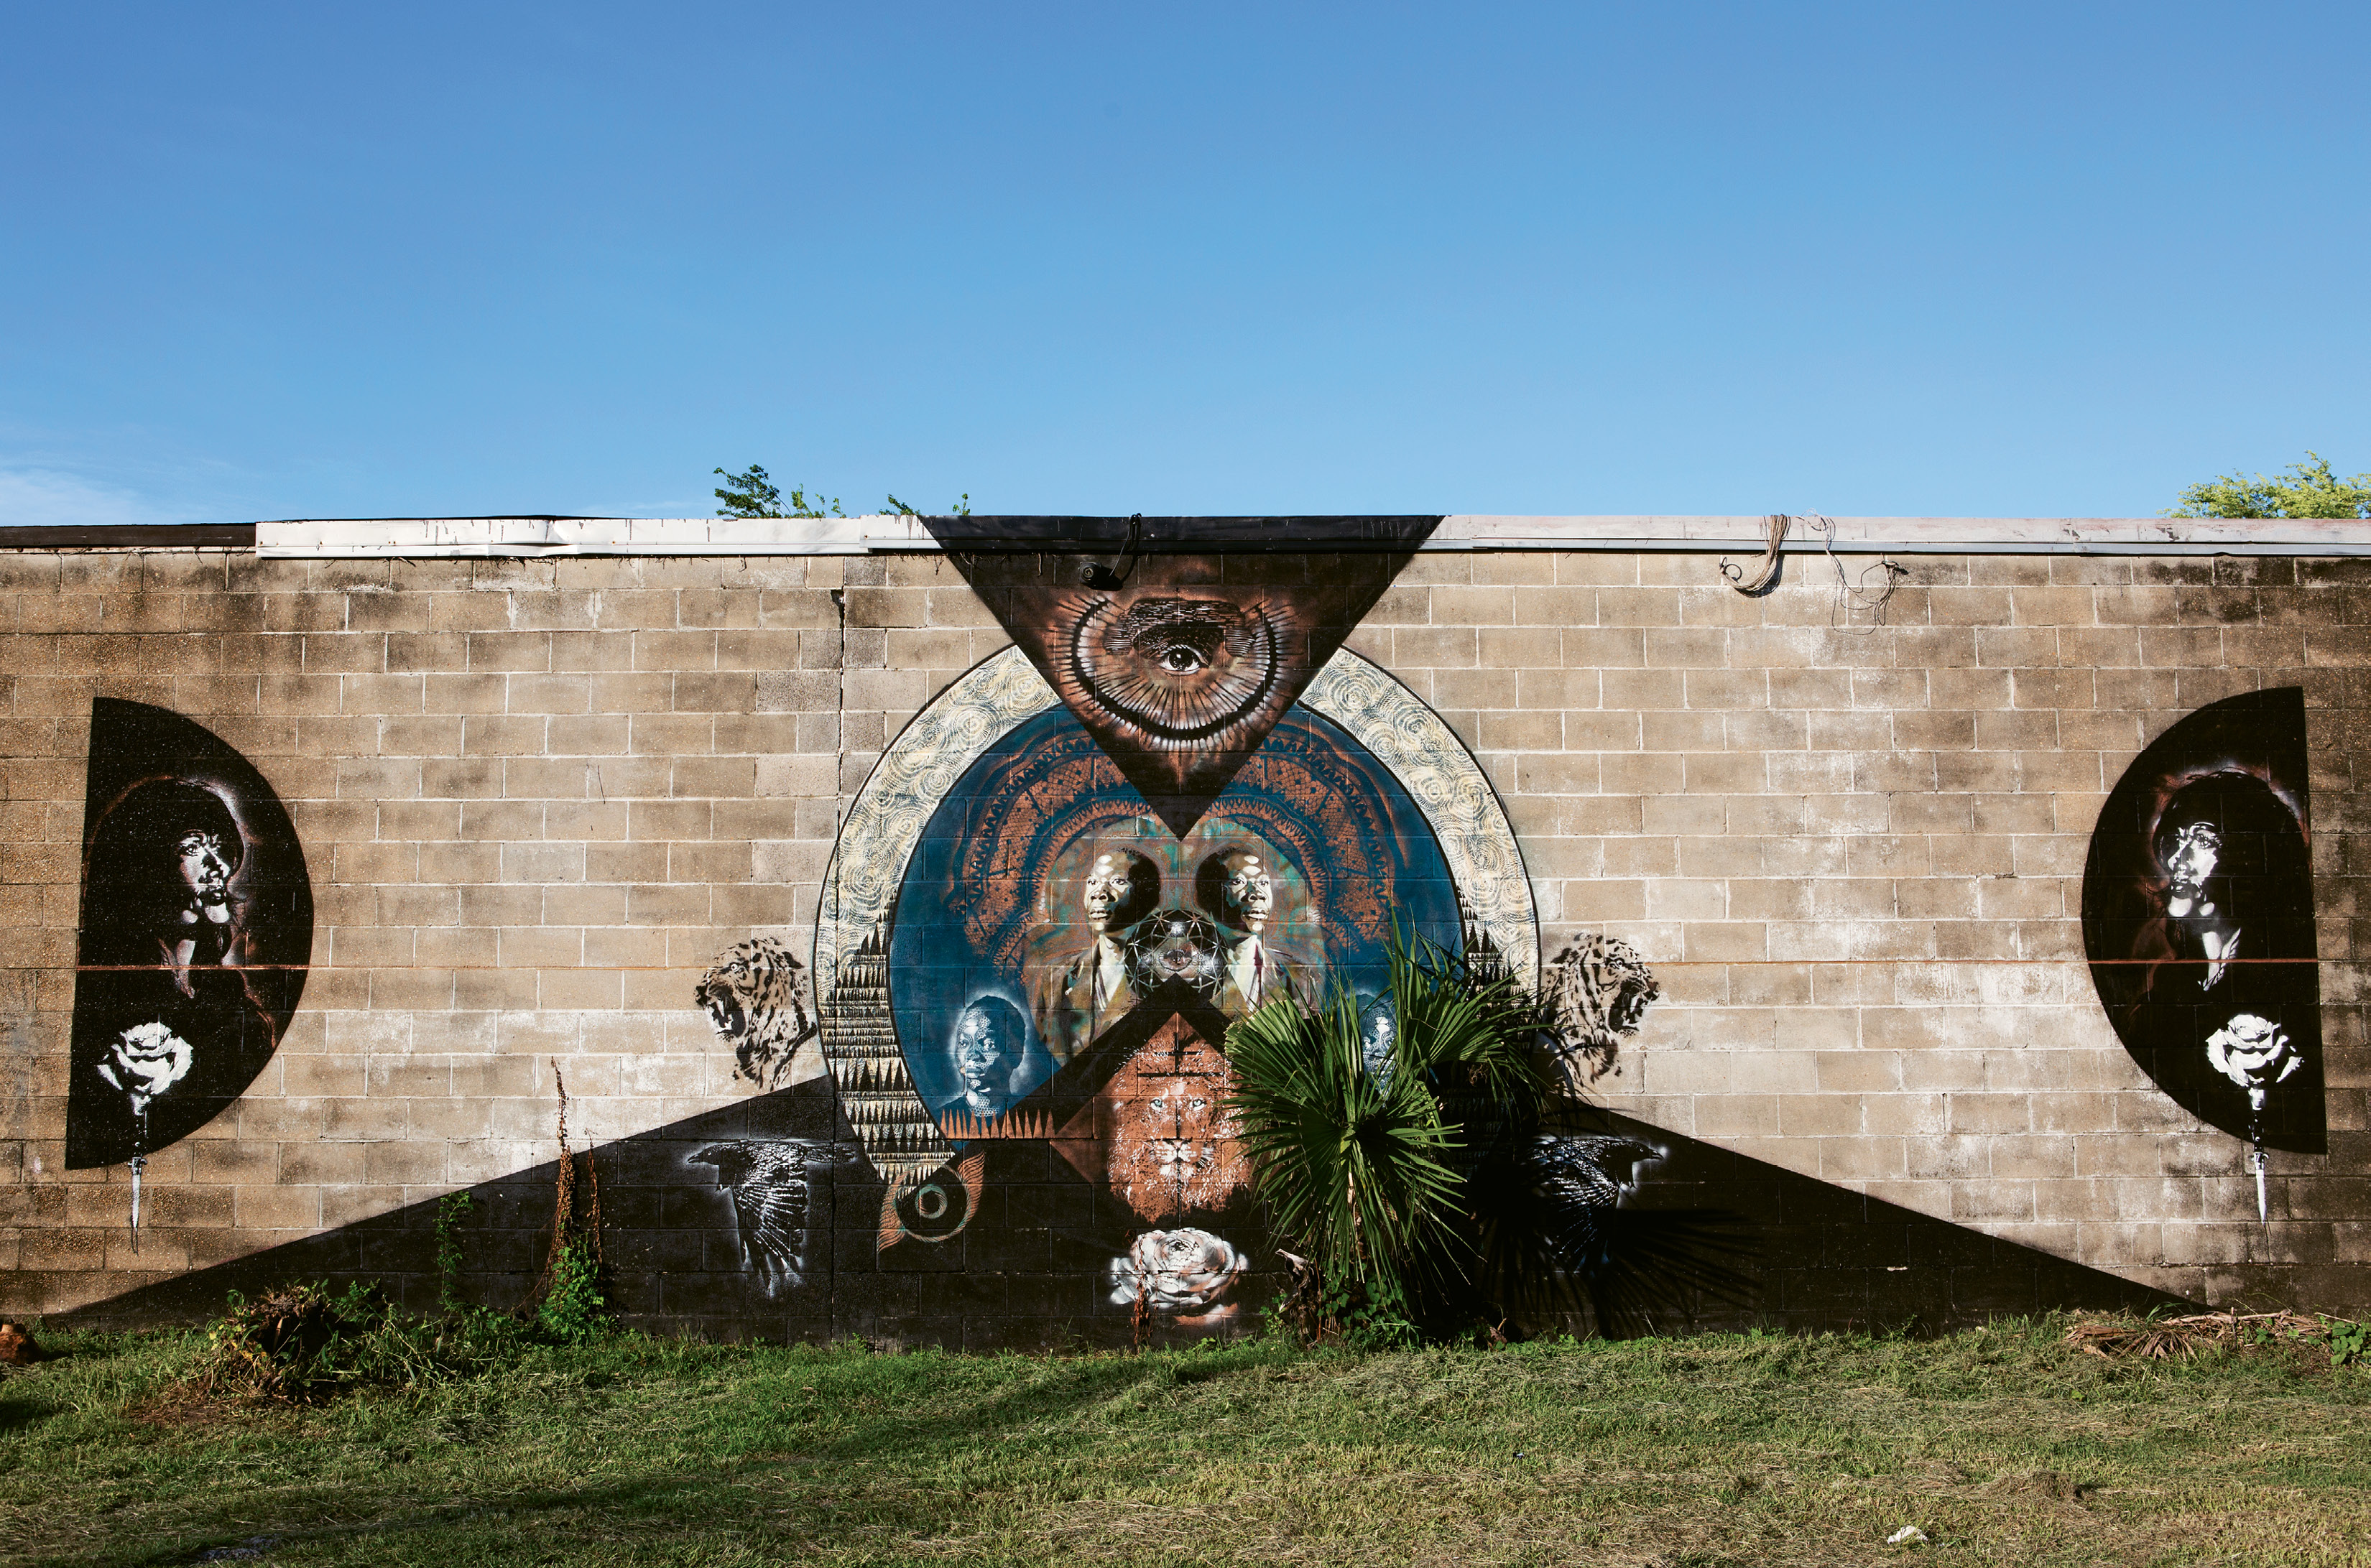 "Living Stone by RC Hagans,  June 2015  (Huger & Hanover streets). Created alongside seven other works for Enough Pie's ""AWAKENING III: SOLSTICE"" community art event, this mural by Alabama-based artist RC Hagans was inspired by a home for boys orphaned by violence and disease in Zambia. he says The central figure is the elder brother and protector: ""His lion's heart and quiet strength make him the perfect watcher for all who walk these streets. If you are weak, may you become strong, if you are strong, protect the weak."""